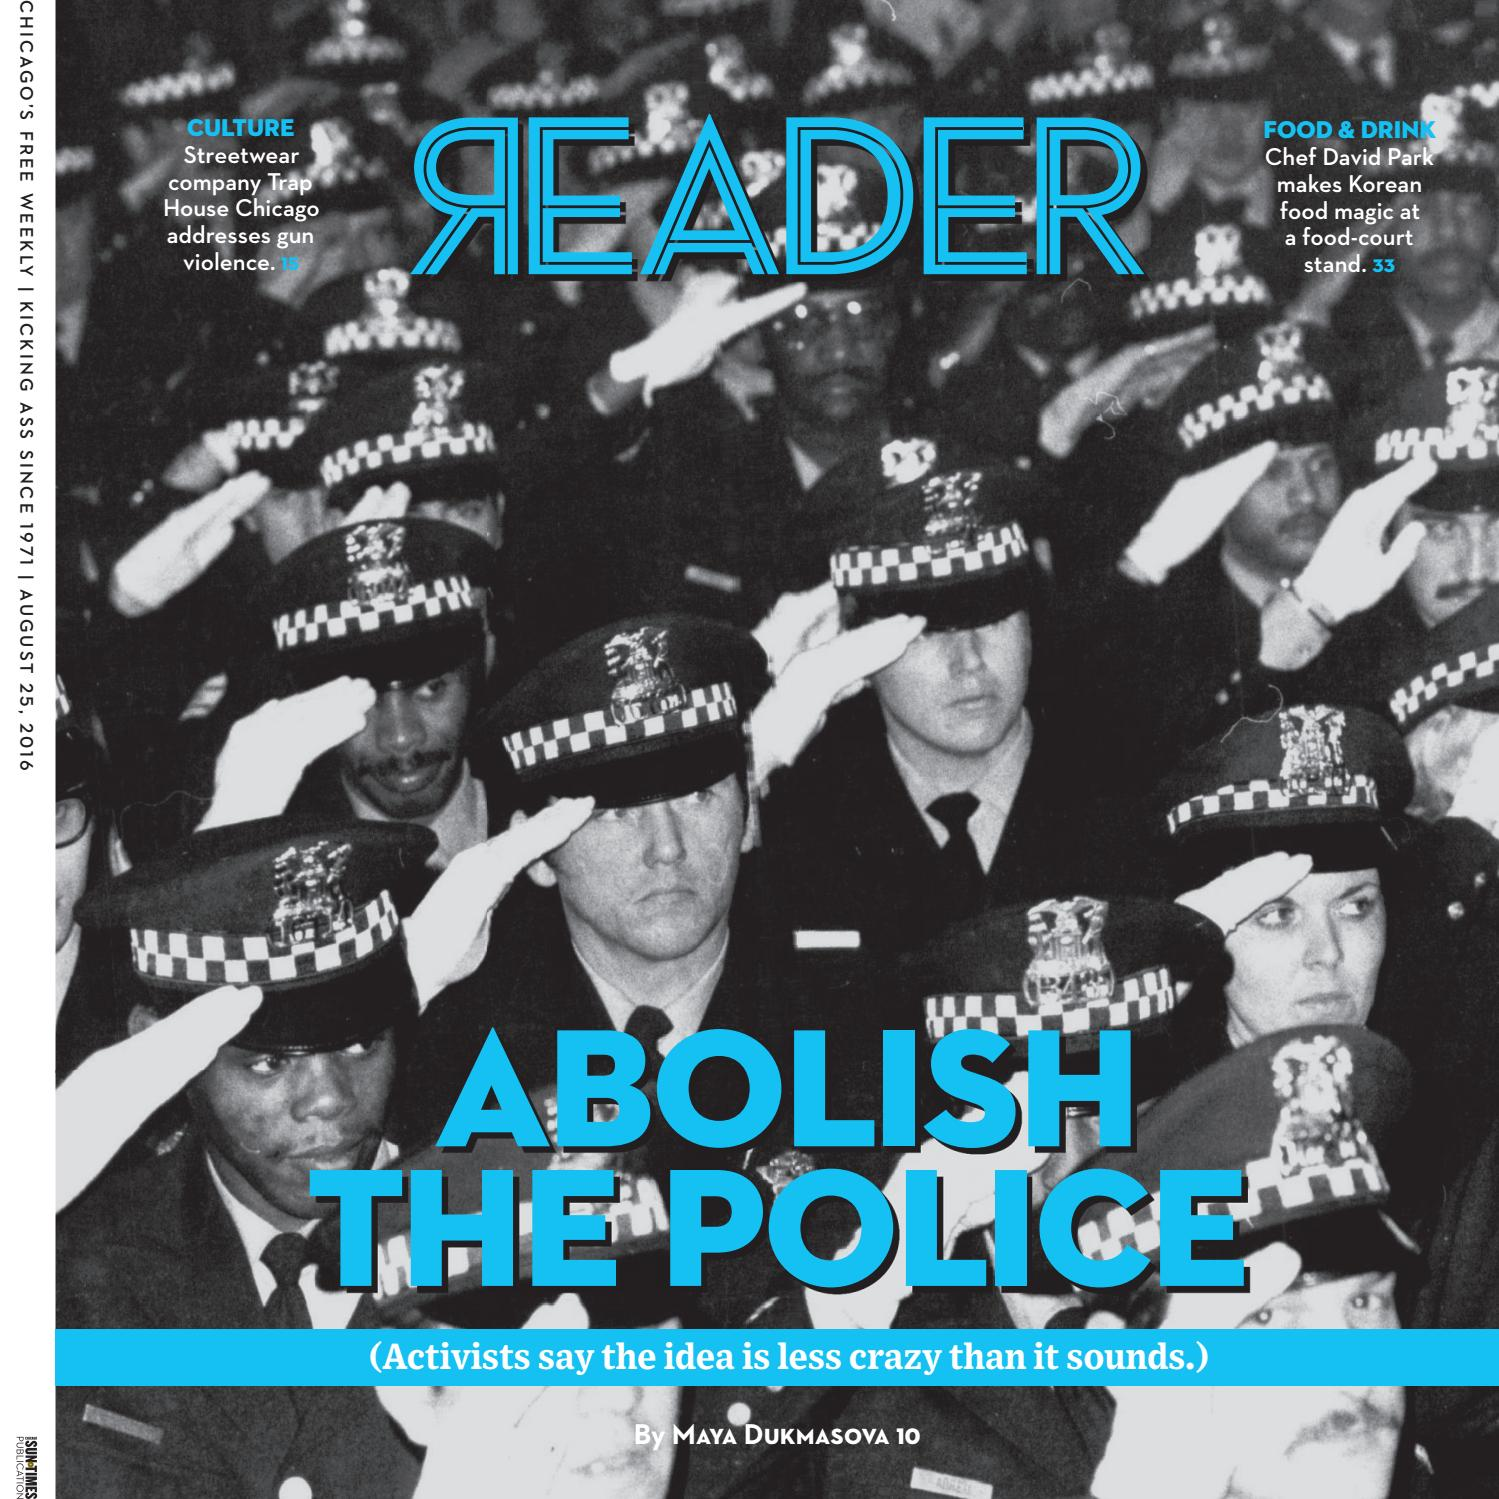 Chicago Reader print issue of August 25 2016 Volume 45 Number 46